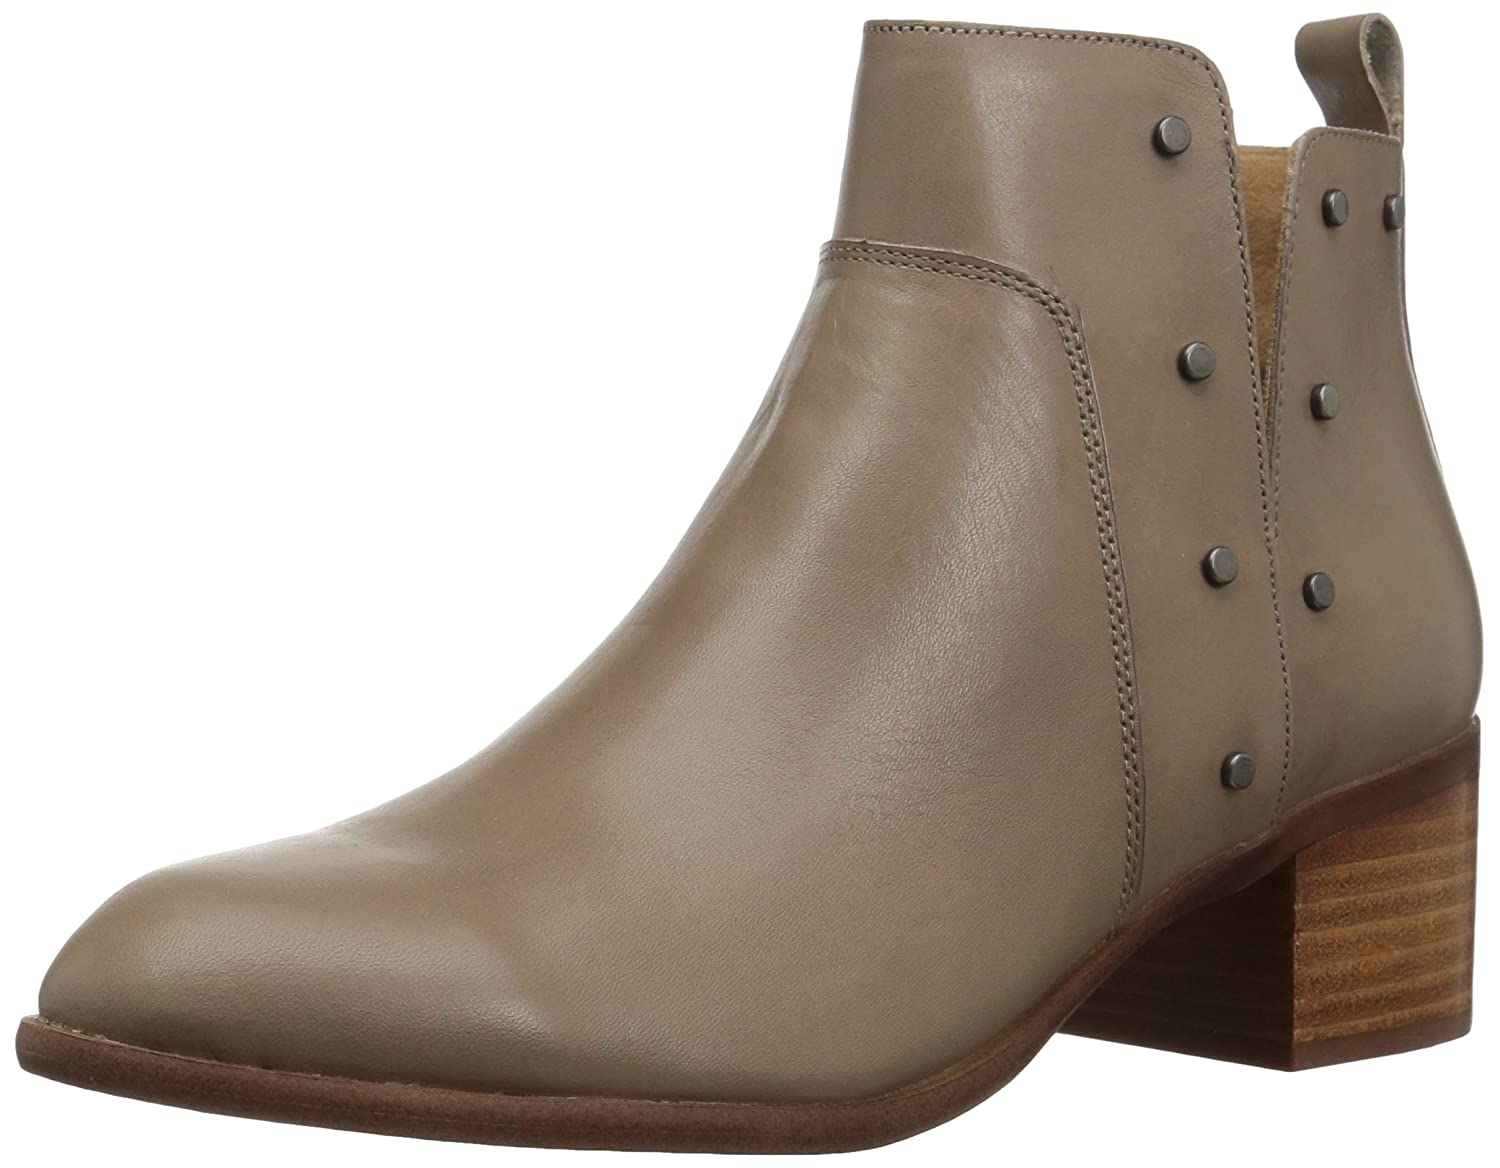 Franco Sarto Women's Richland Ankle Boot B071NLZRCC 11 B(M) US|Dover Taupe